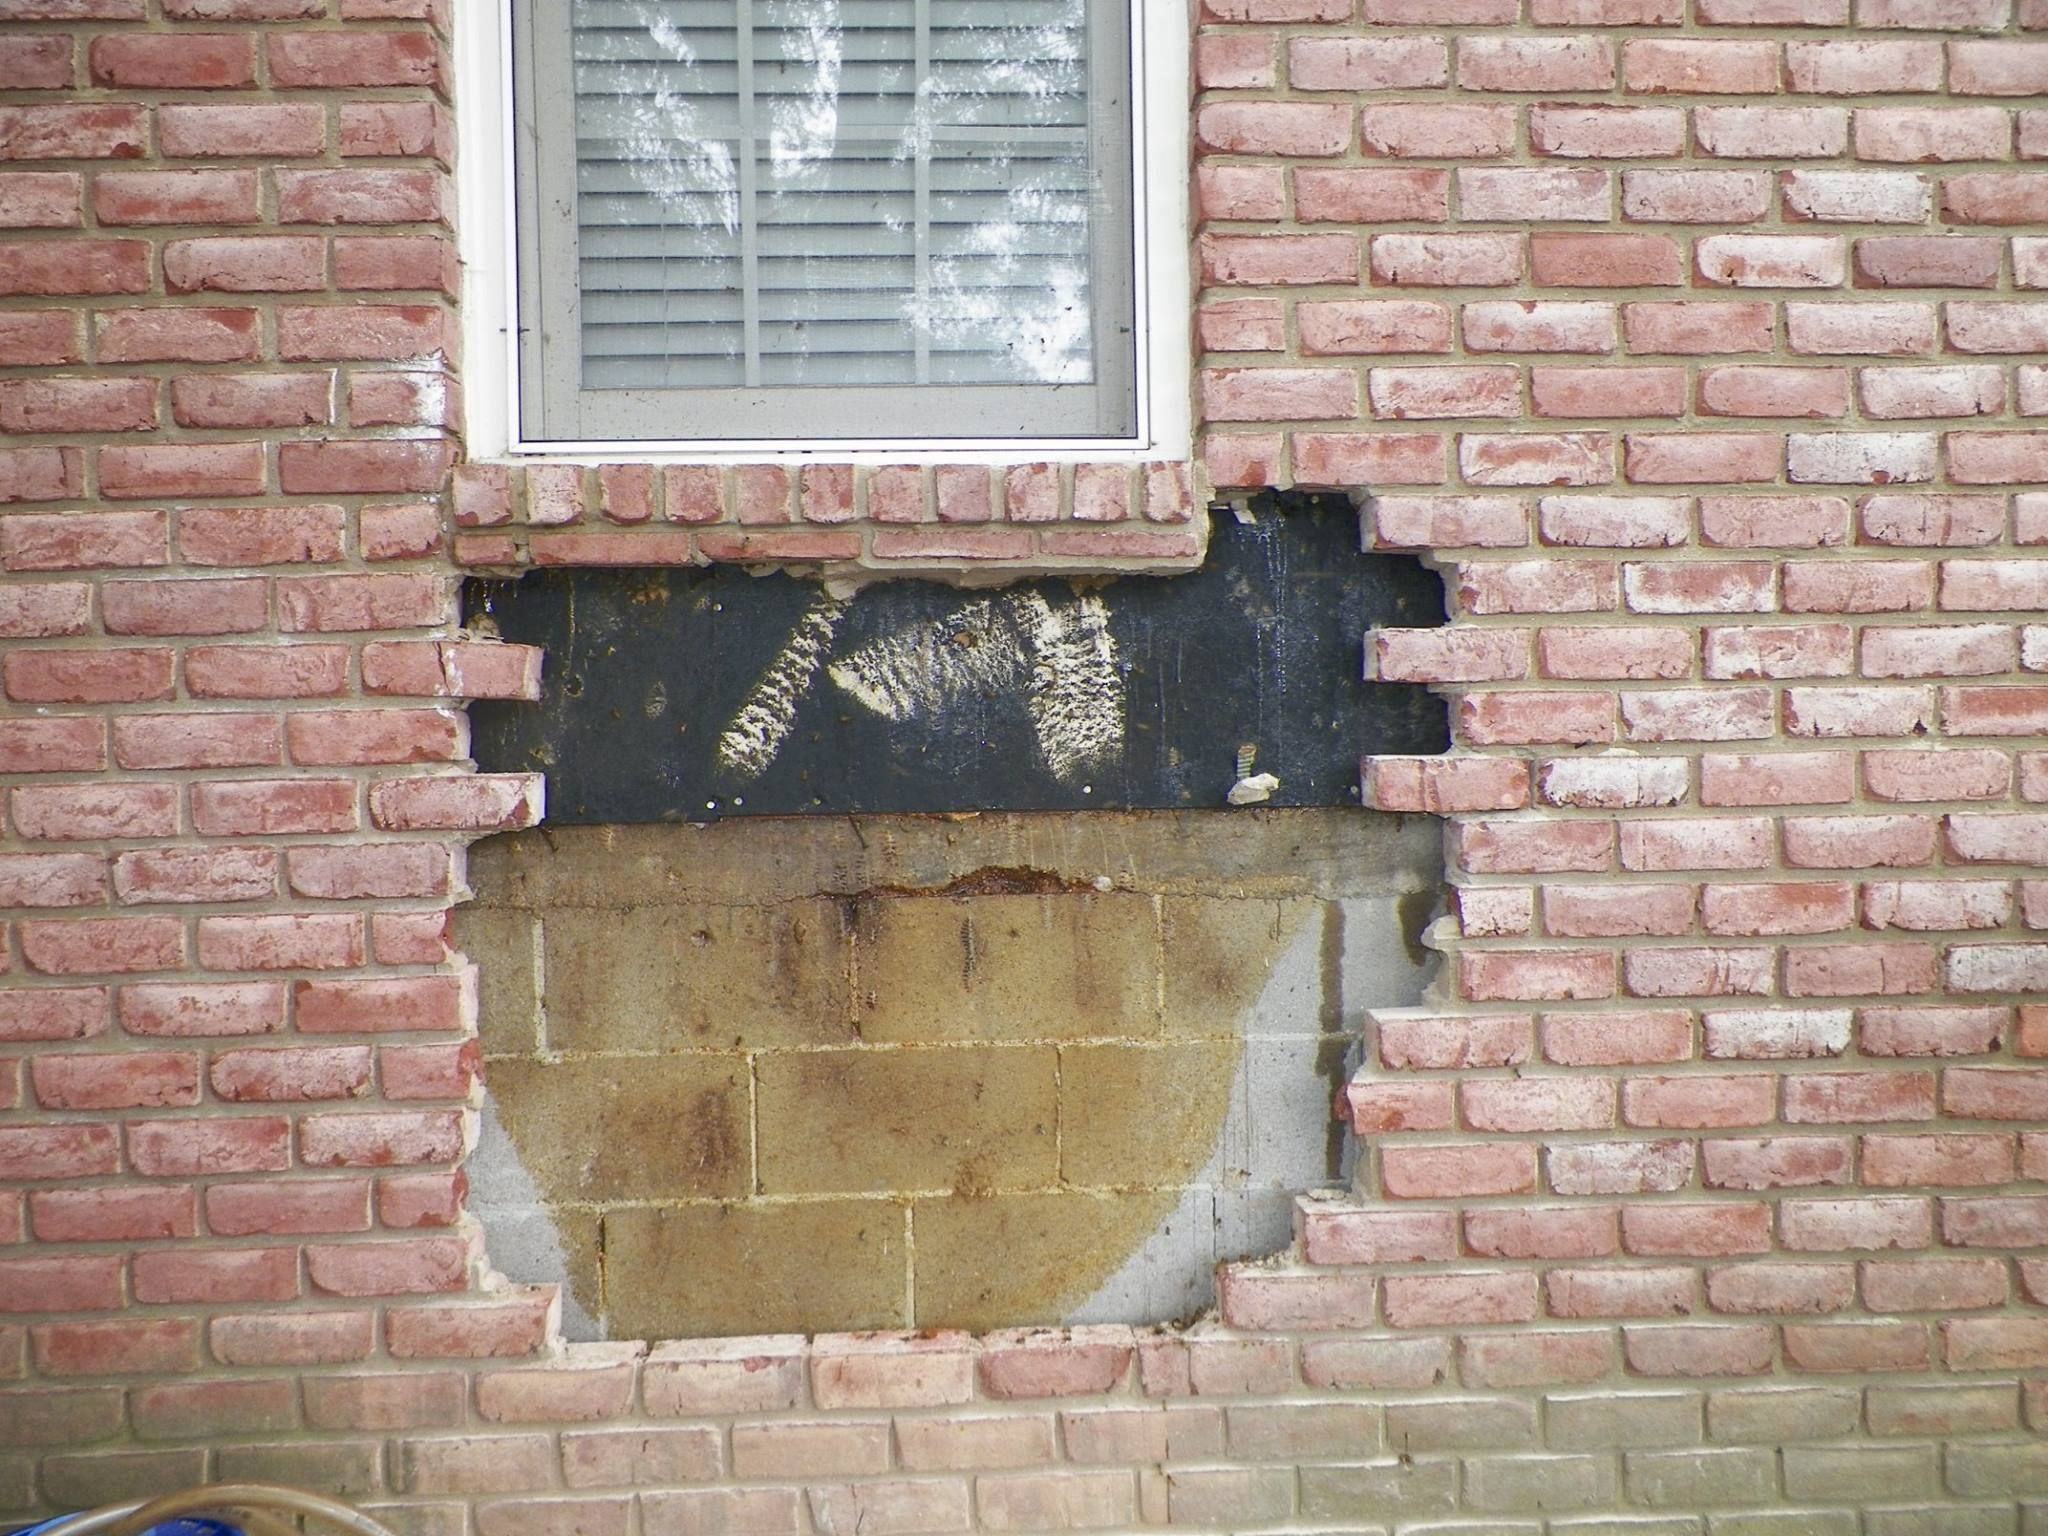 Aftermath of bee hive removed from brick wall